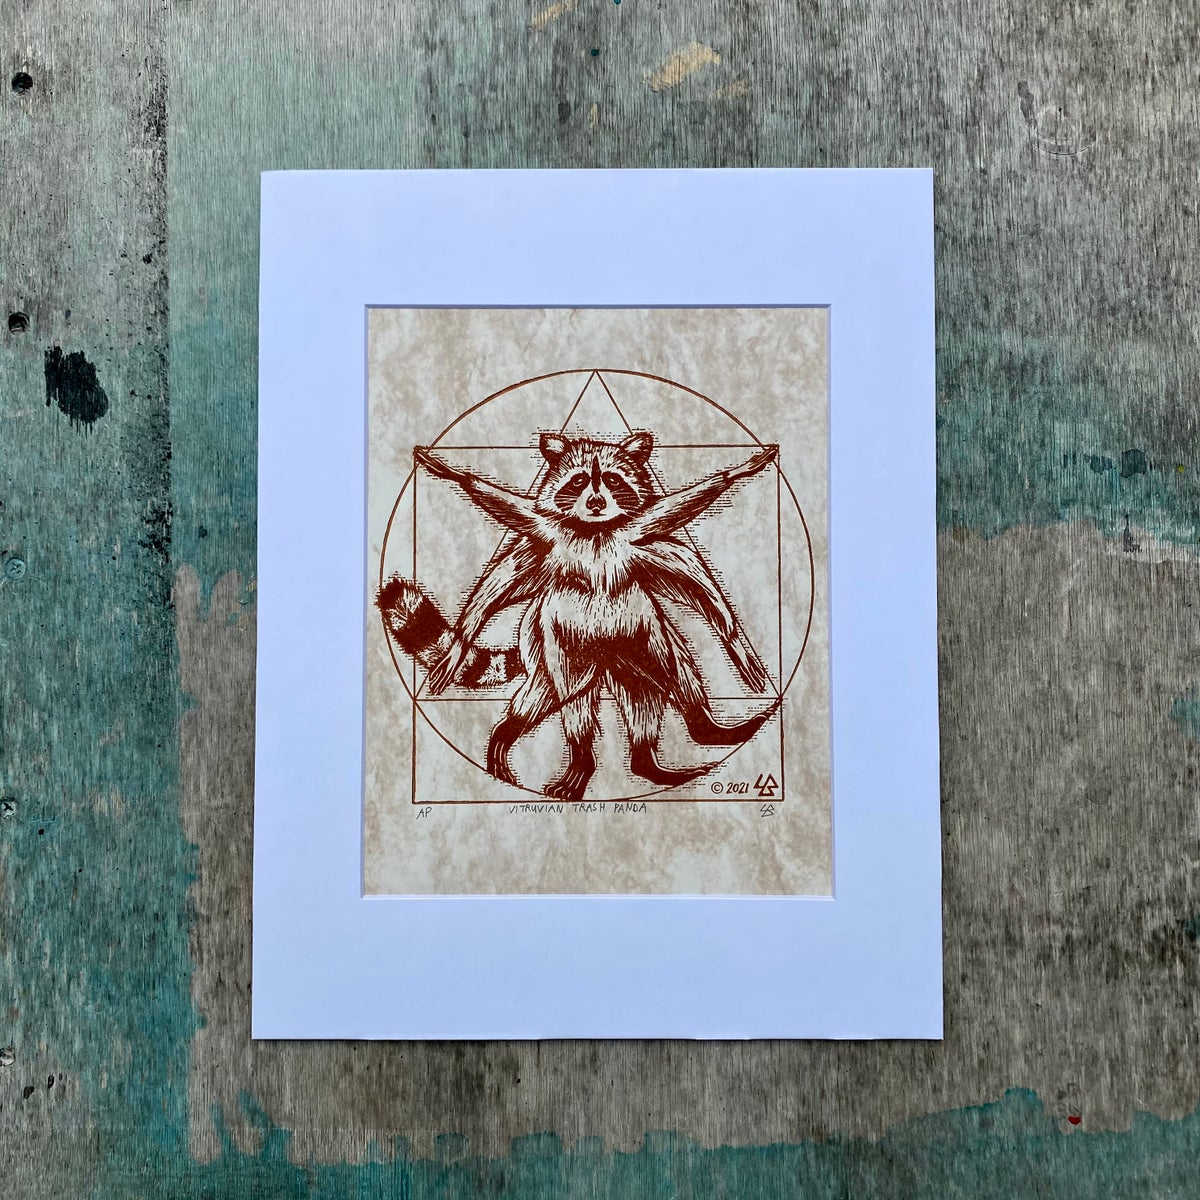 Image of Vitruvian Trash Panda